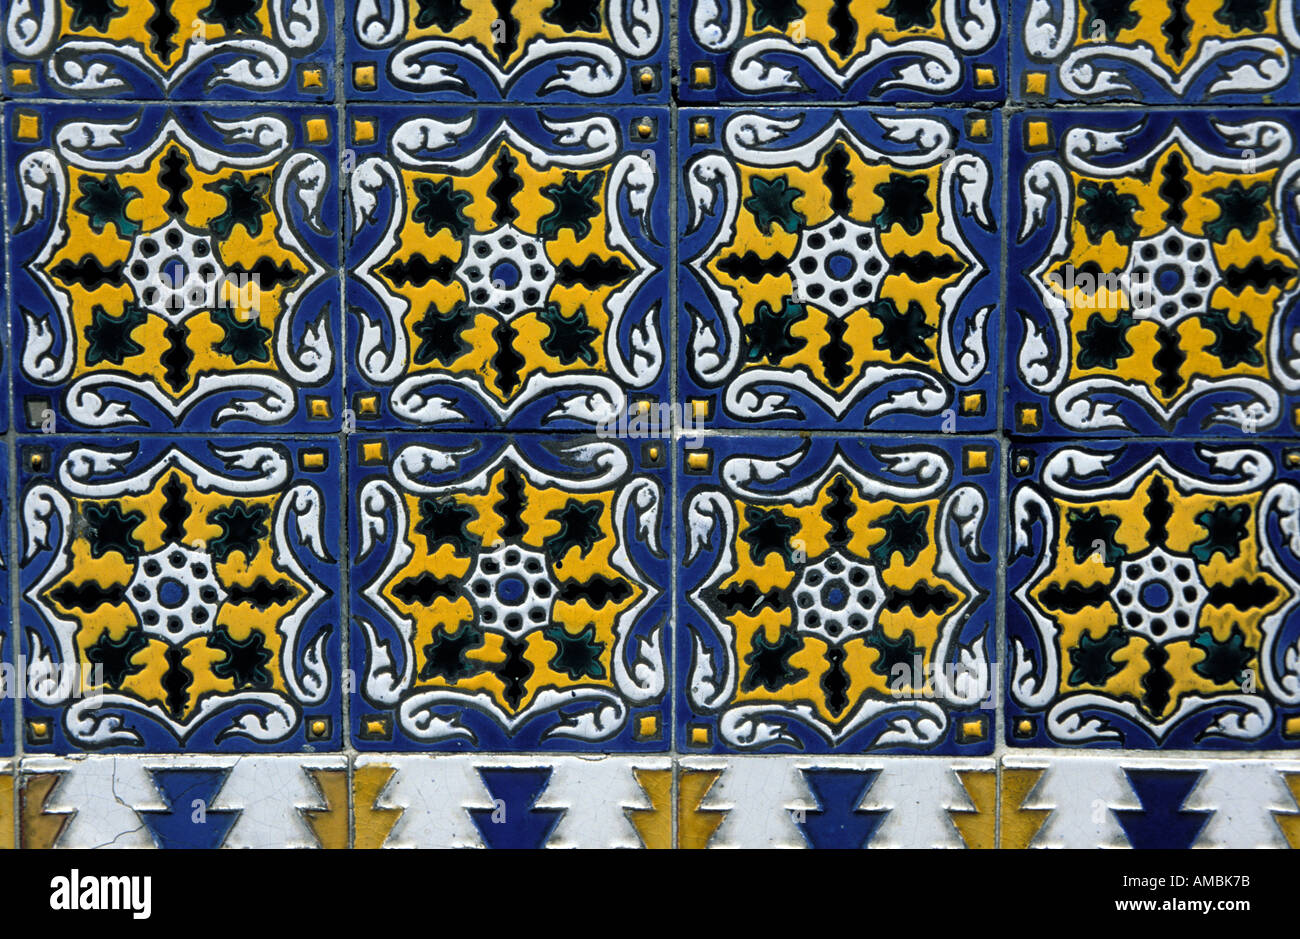 Buenos Aires decorative tiles - Stock Image